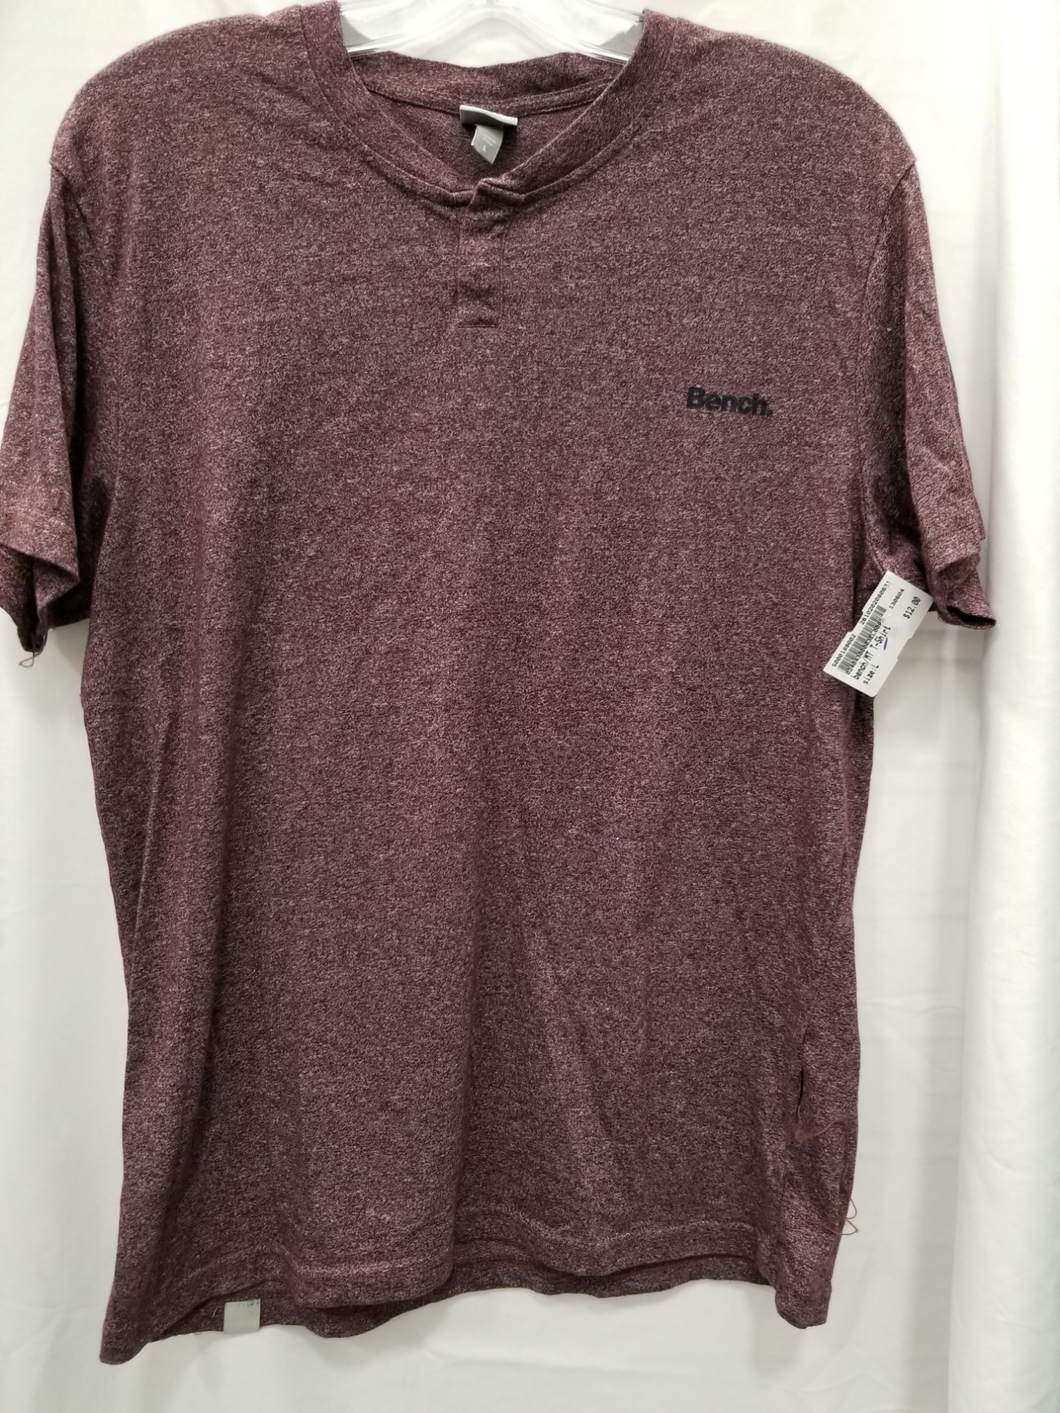 Bench T-shirt Size Large